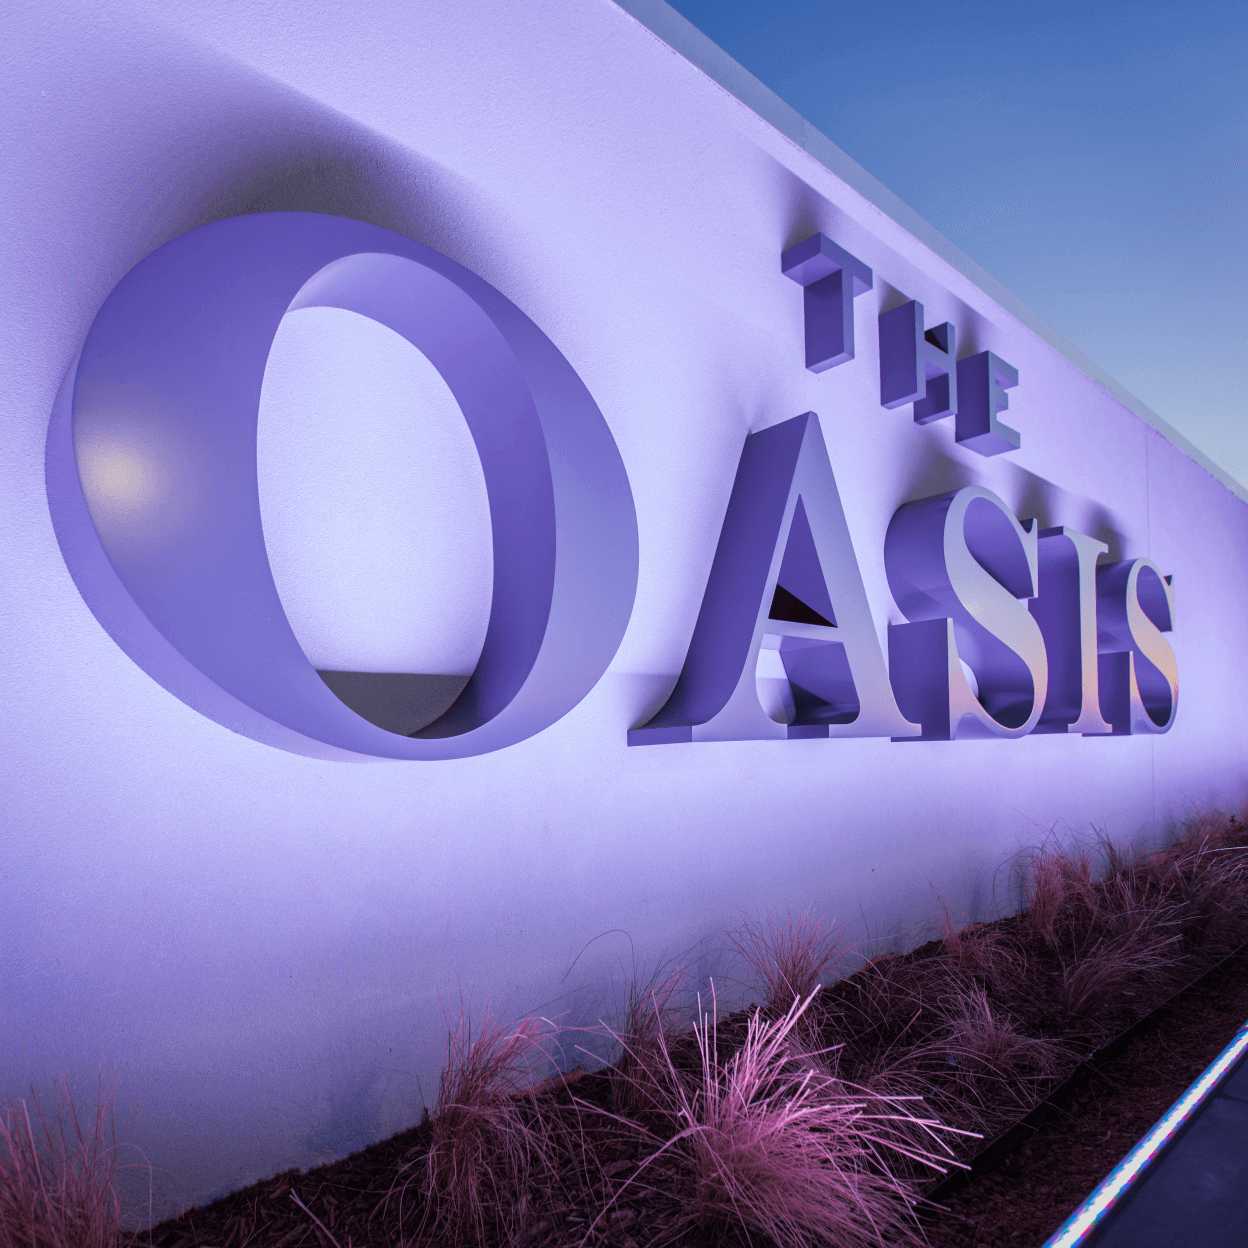 Oasis_5